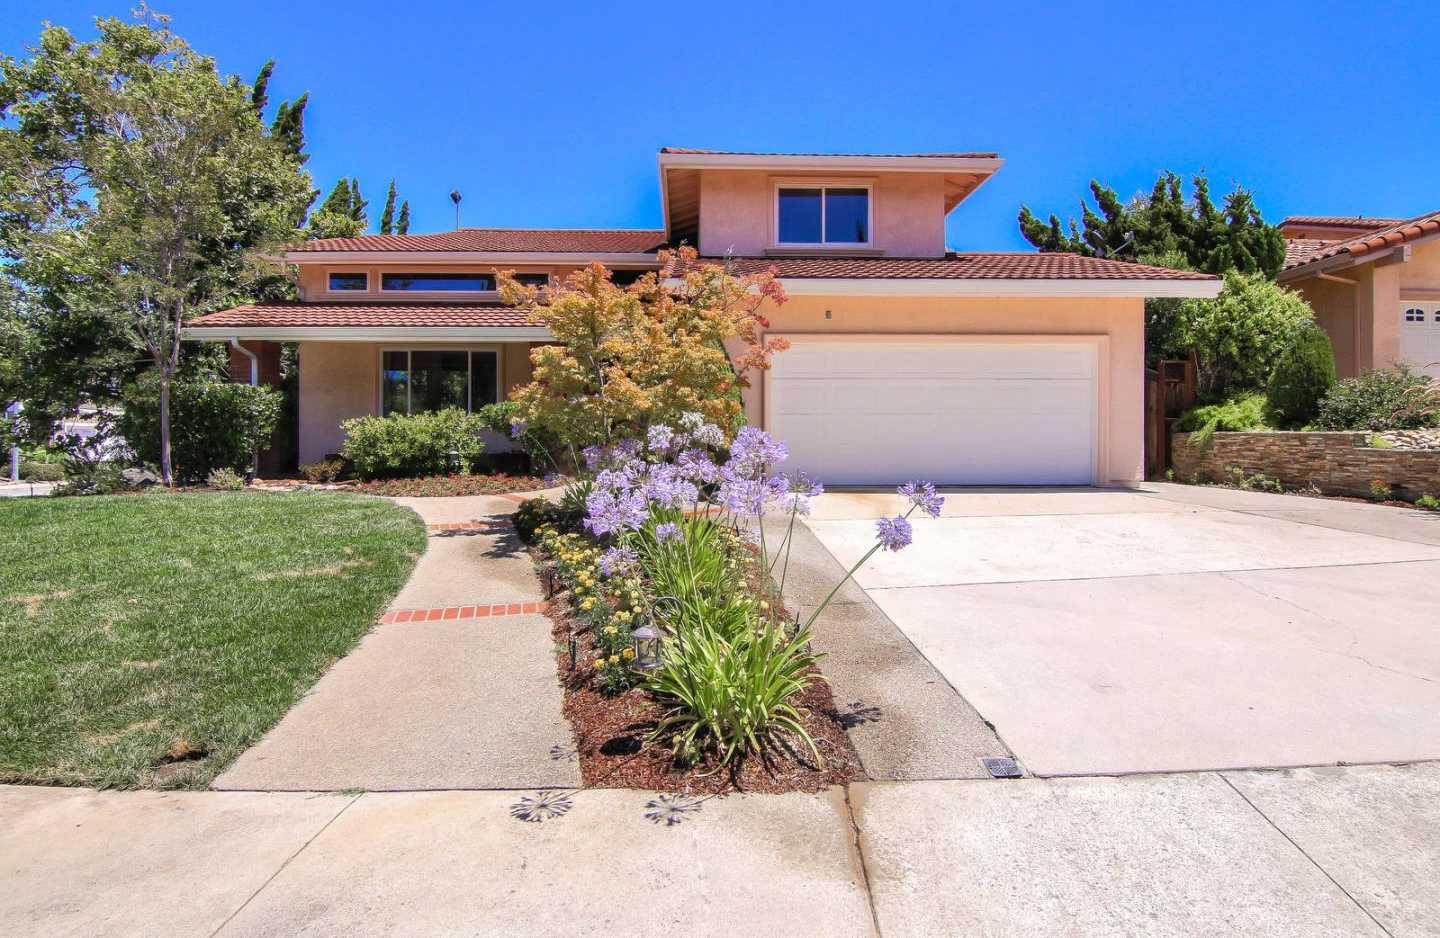 $1,598,000 - 4Br/3Ba -  for Sale in San Jose